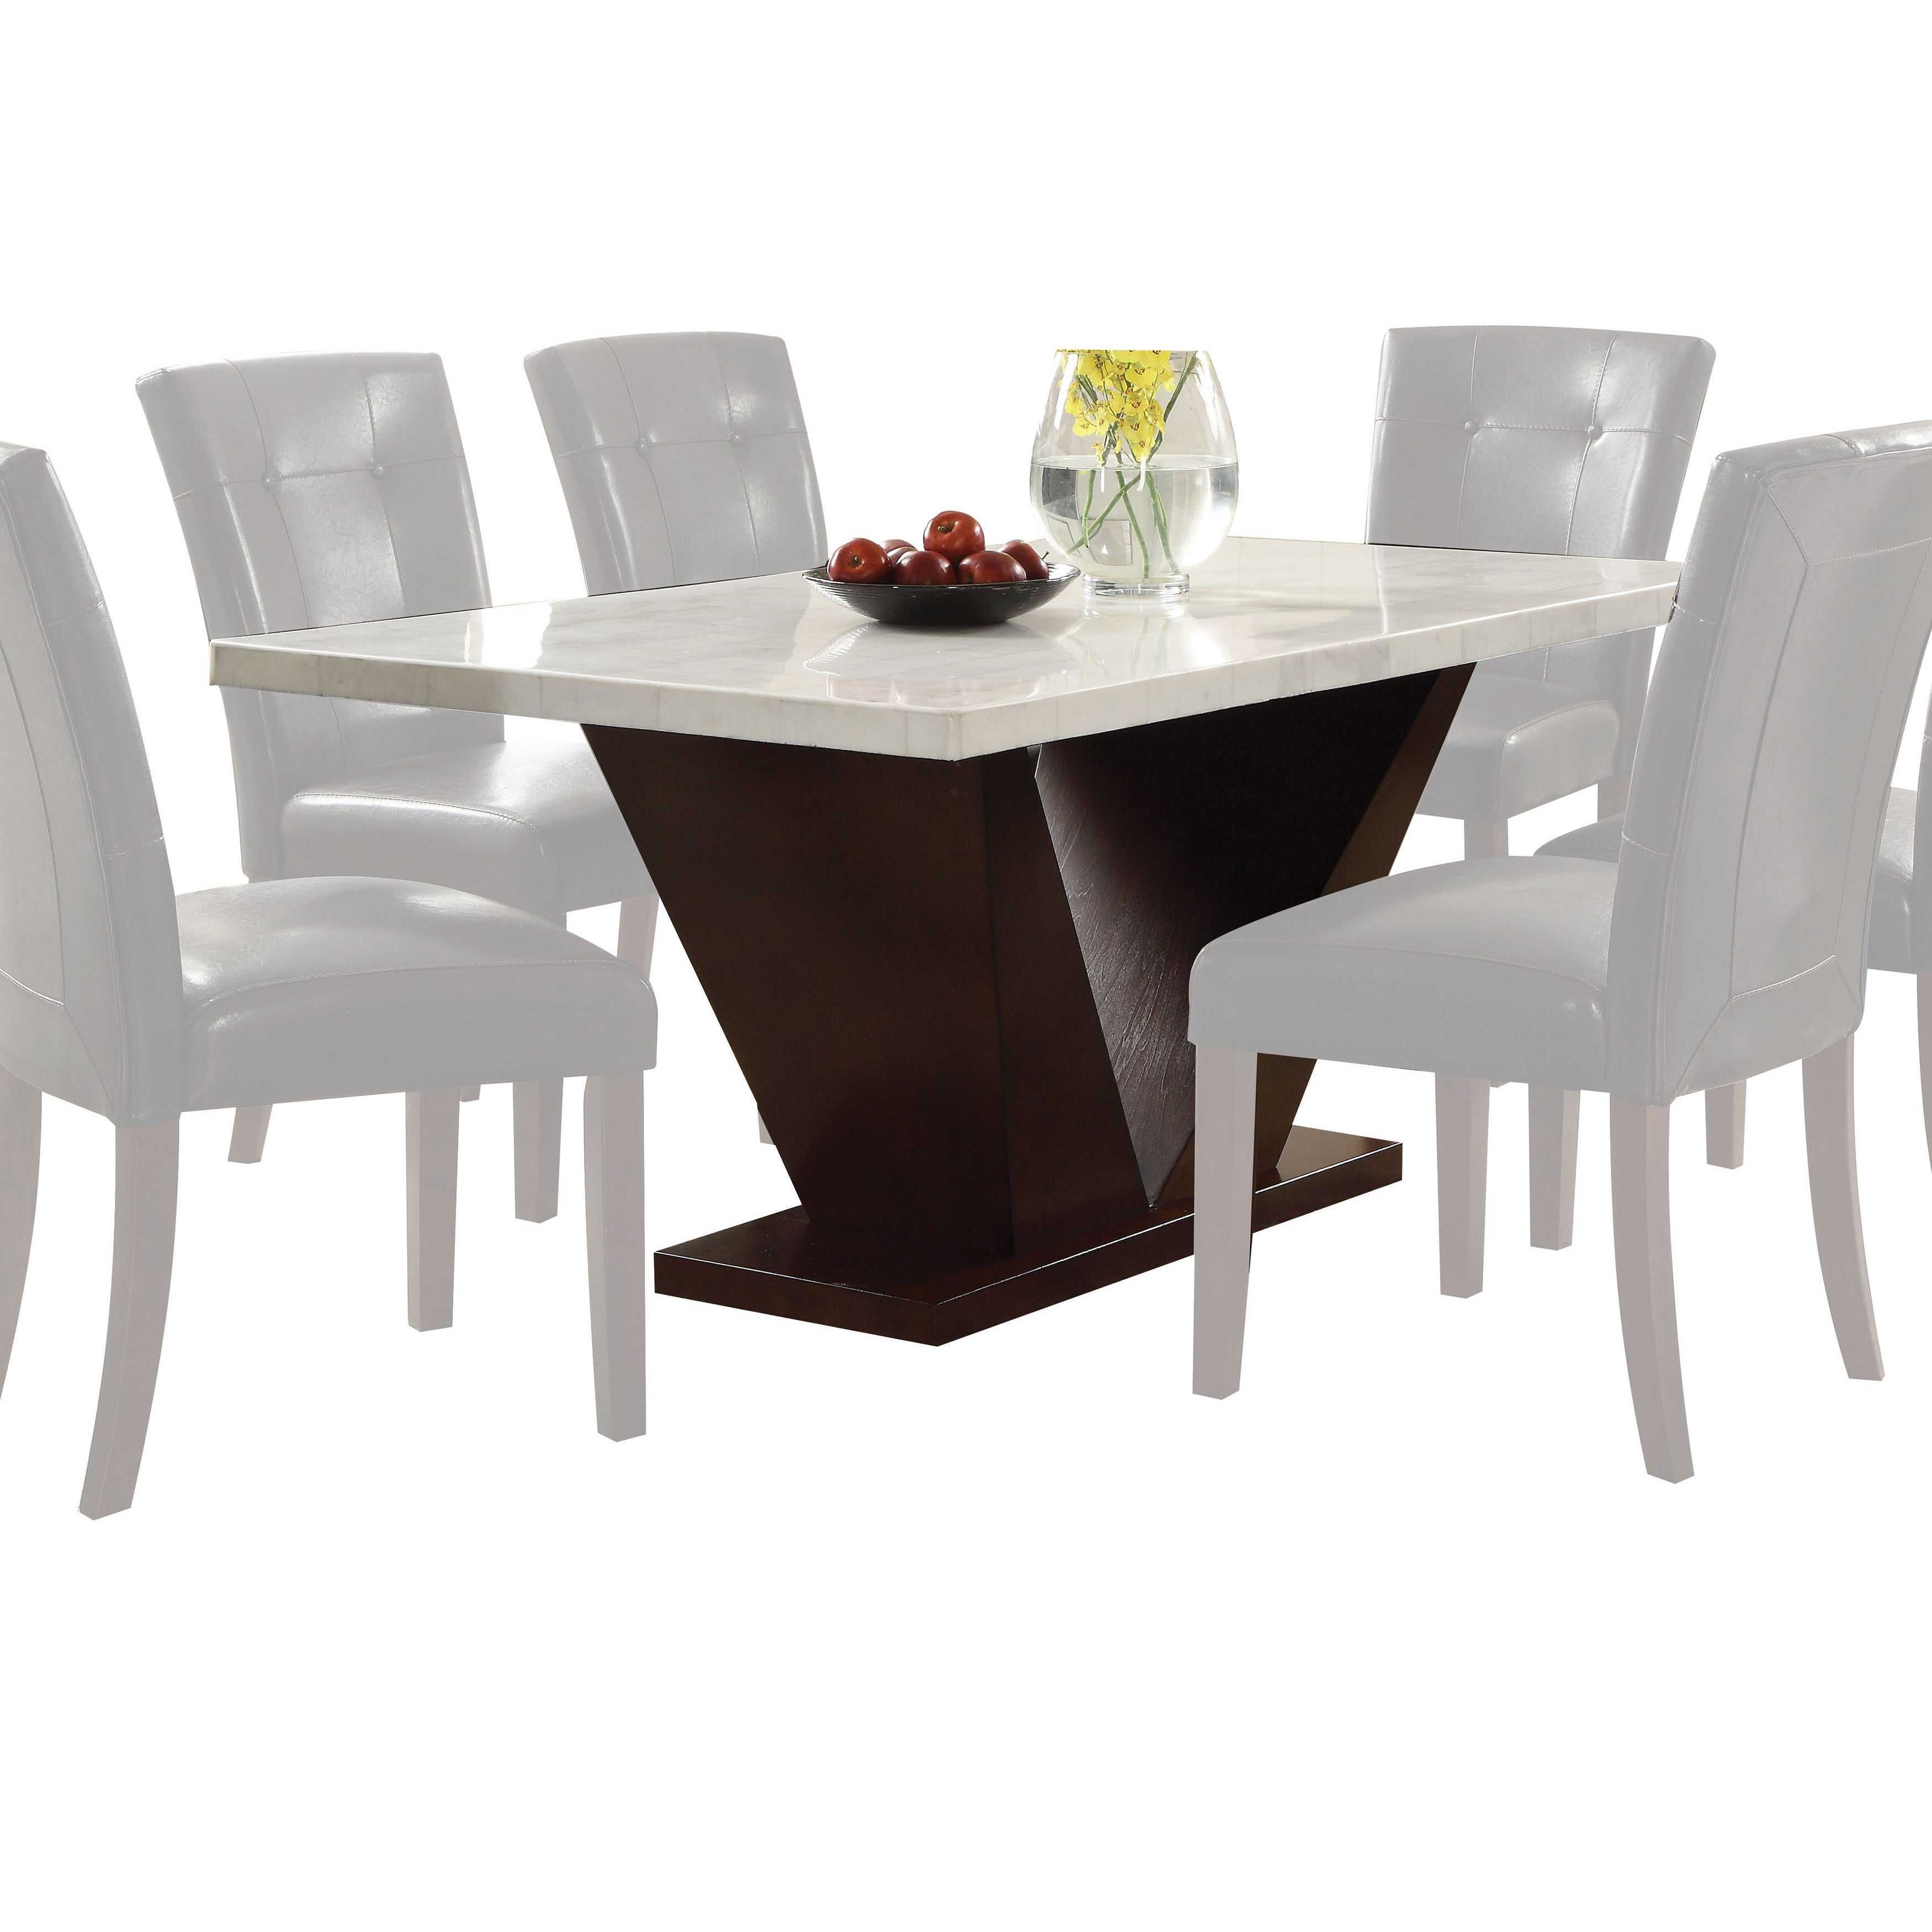 Shop acme furniture forbes white marble and walnut dining table free shipping today overstock com 14412232